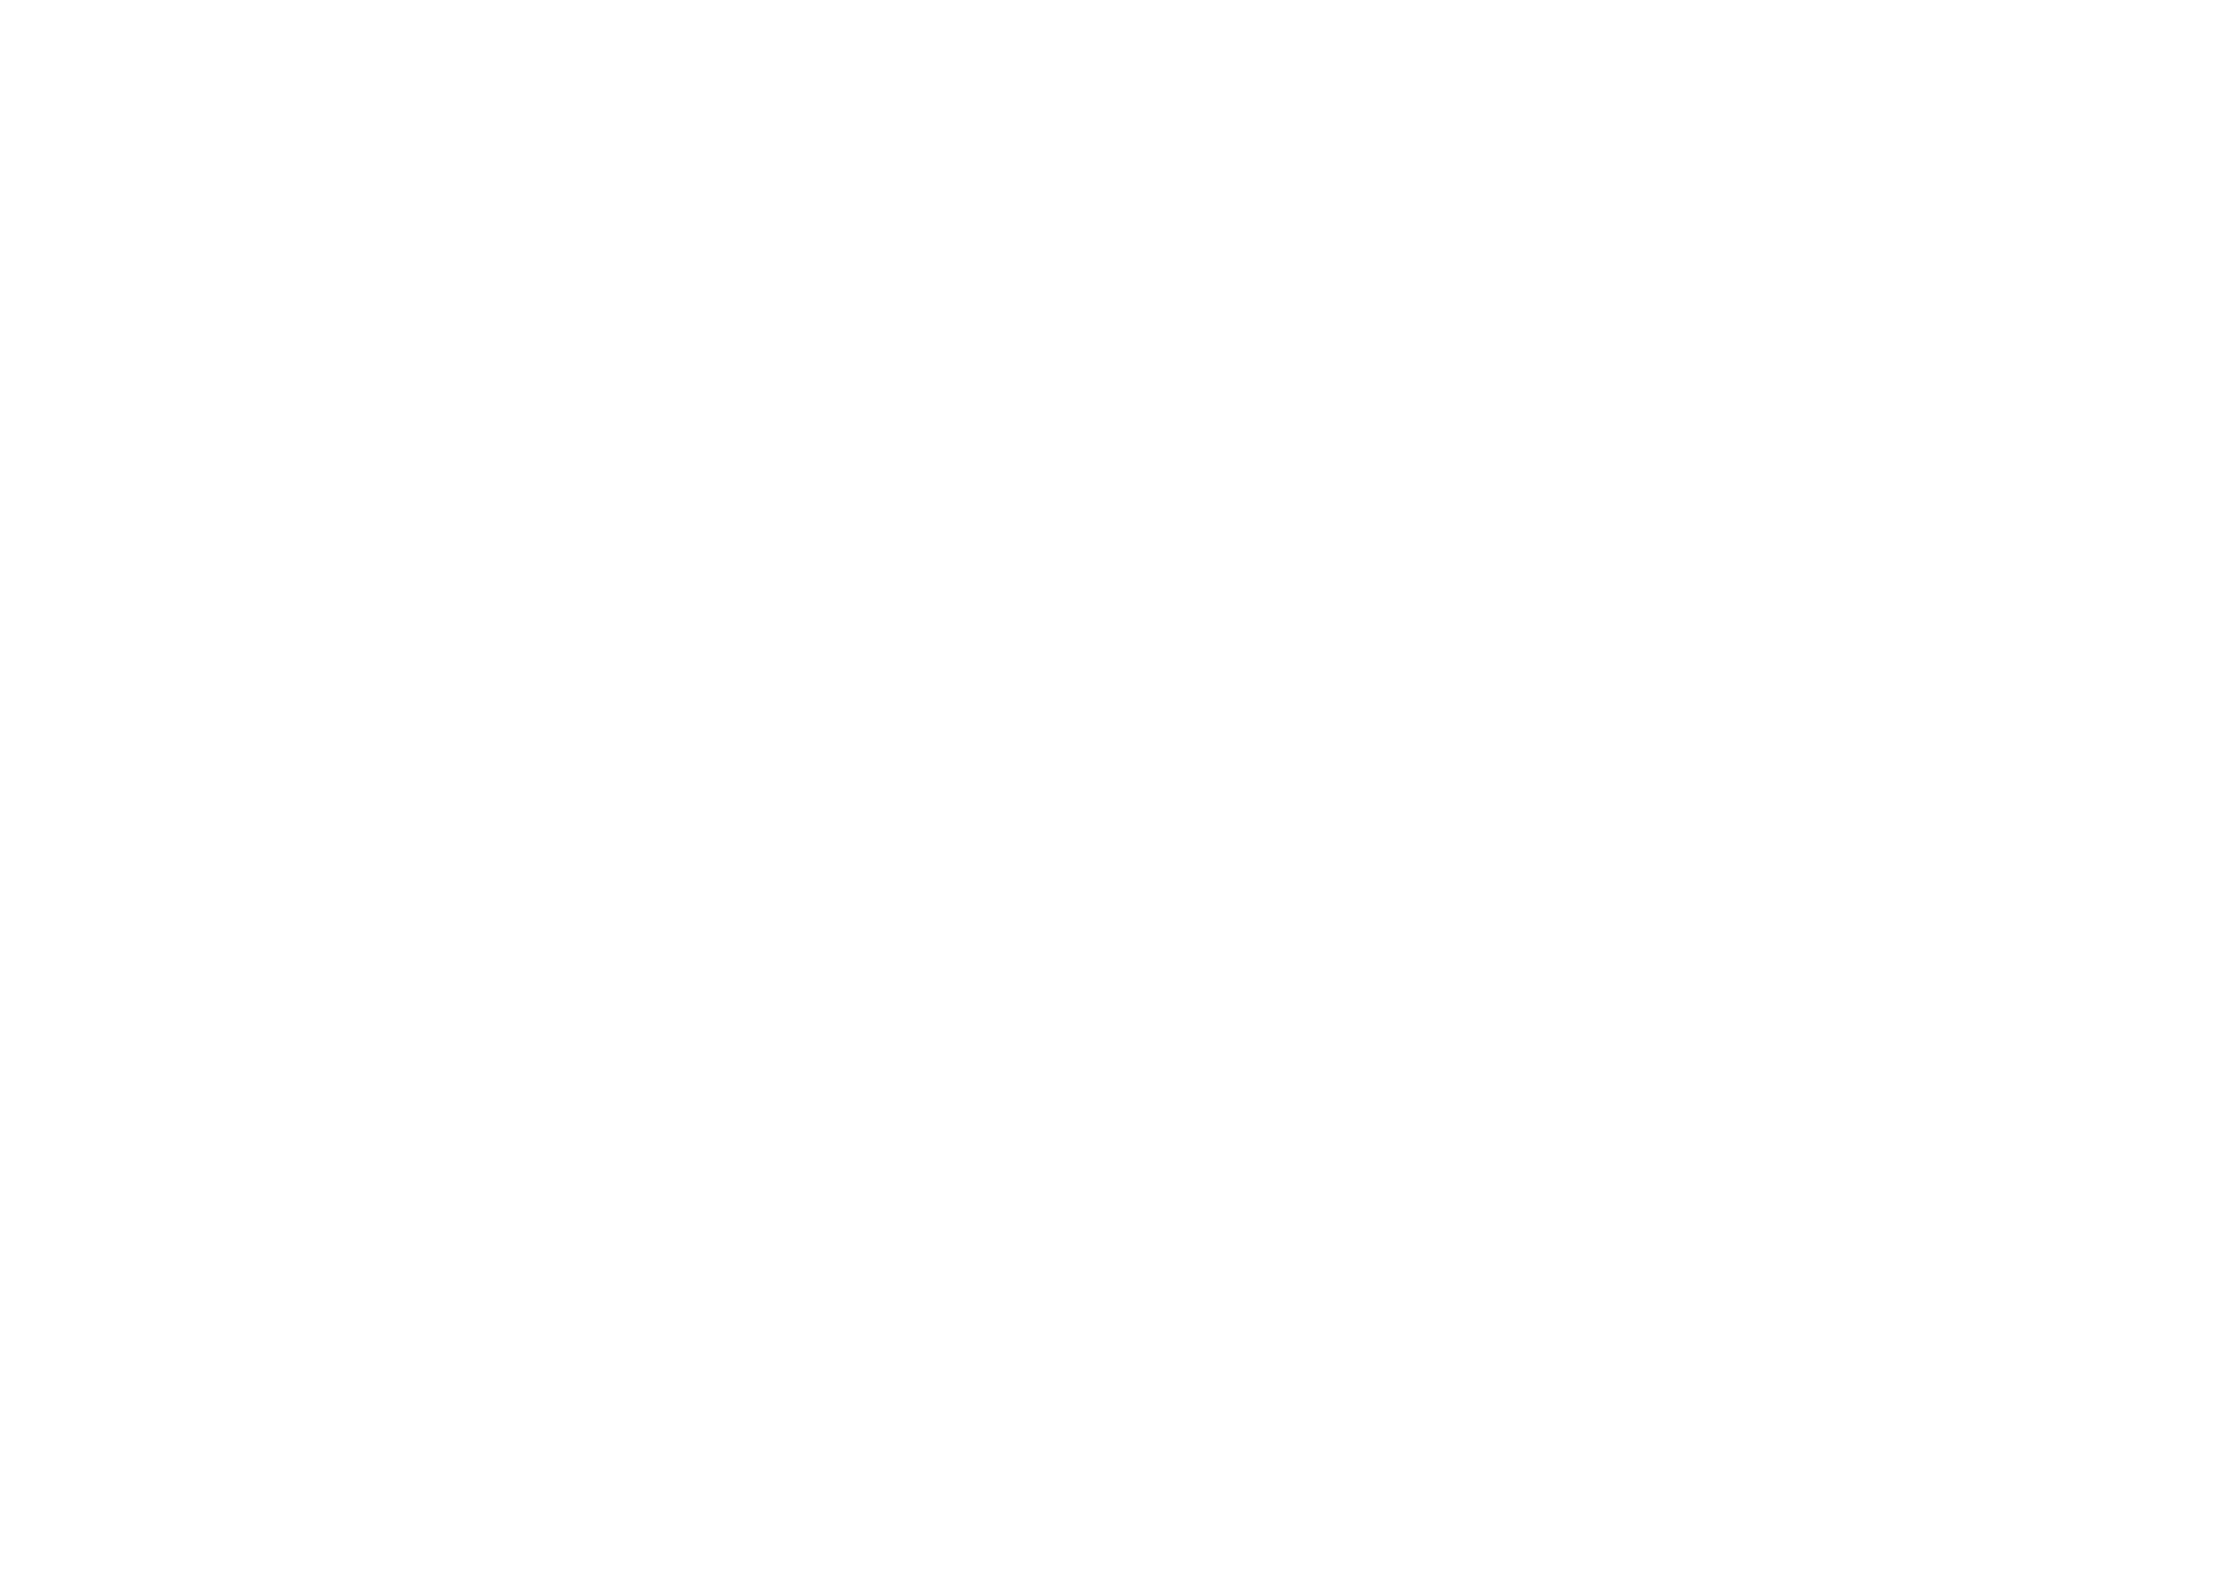 Ptown-official.png